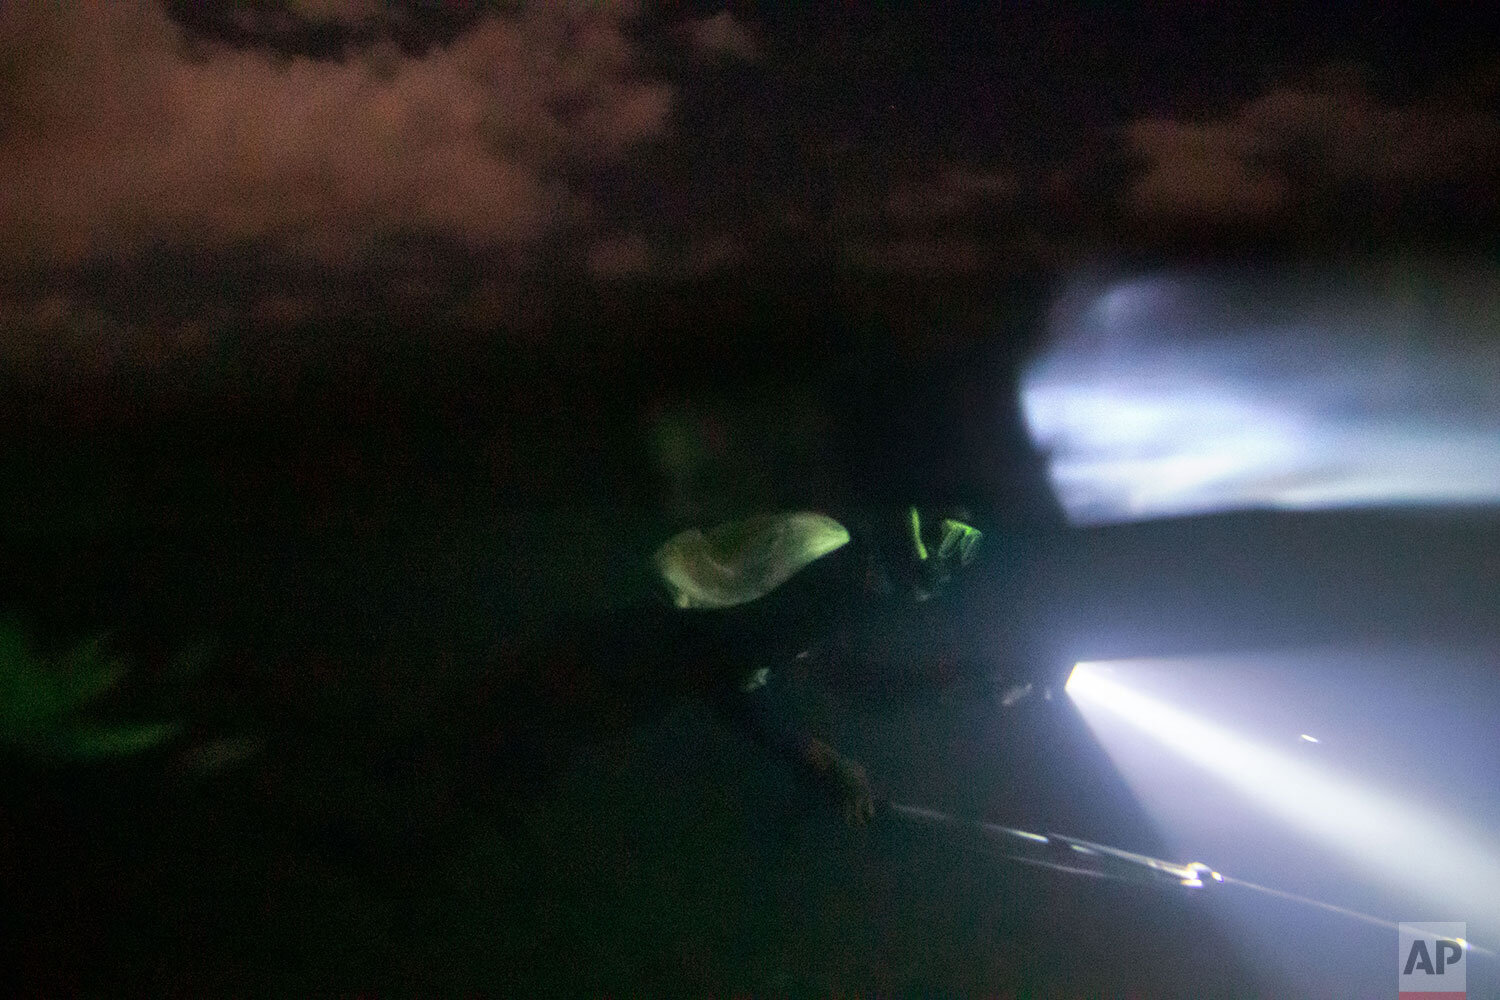 Nicholas Bingham spearfishes at night, which is banned, under a moonlit sky, in Stewart Town, Jamaica, Friday, Feb. 15, 2019. Night spearfishermen wrap their faces to protect against stinging jellyfish. But that's not the only threat lurking in the water: In addition to sharks, wardens are patrolling, scouting for illegal fishing. (AP Photo/David Goldman)